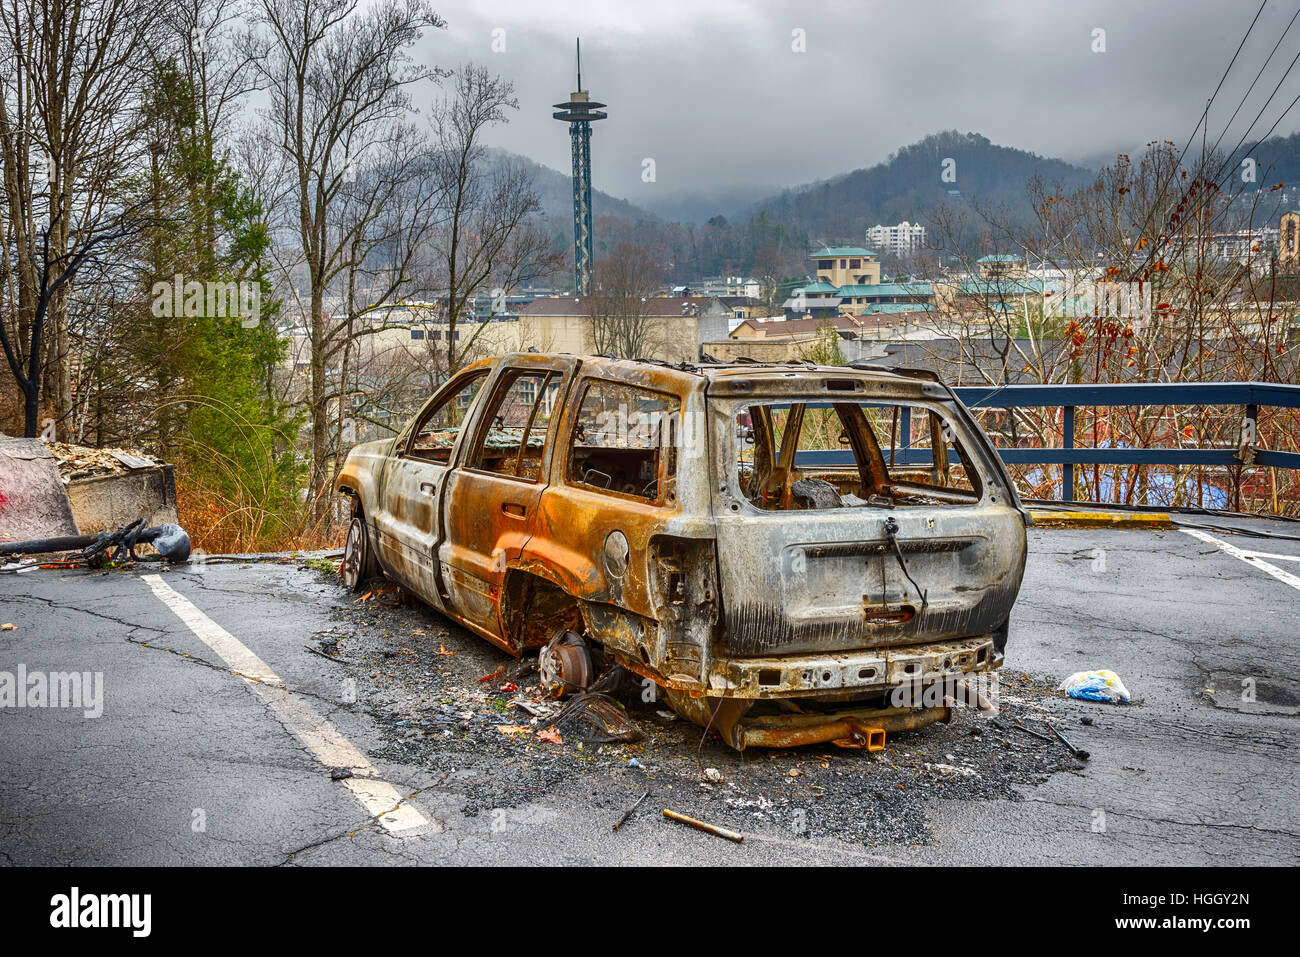 GATLINBURG, TENNESSEE/USA - DECEMBER 14, 2016: A gutted carcass is all that remains of a car in the aftermath of - Stock Image